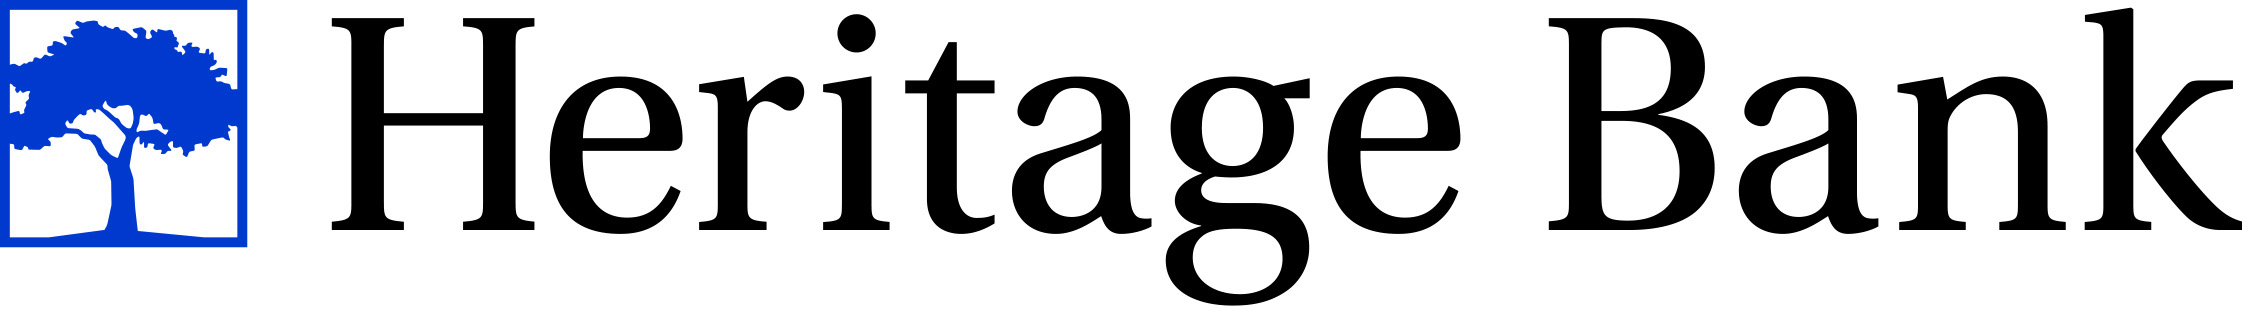 Heritage Bank logo_PRINT or WEB use.jpg